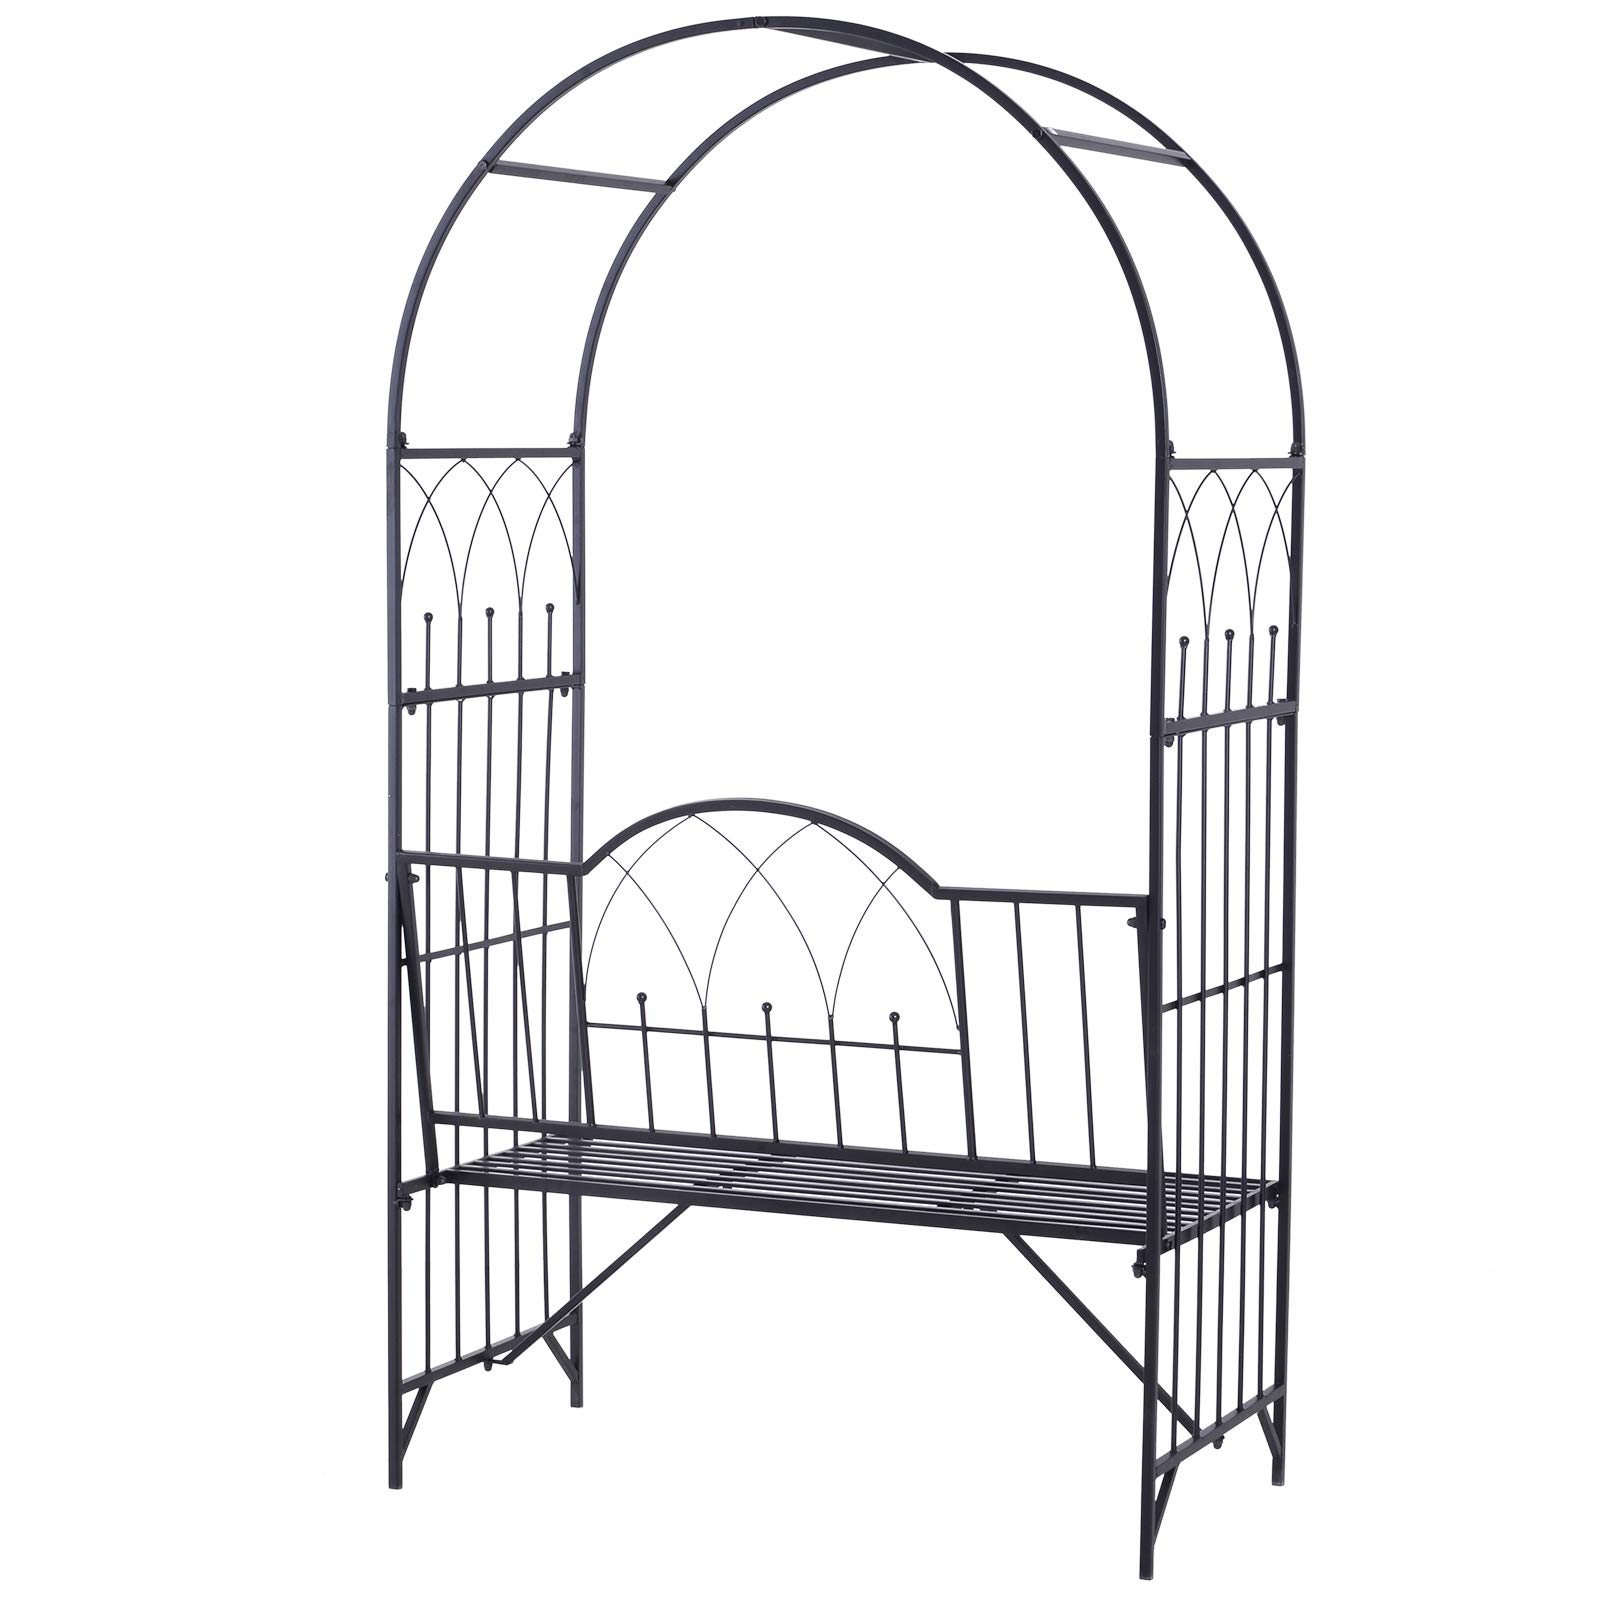 Outsunny Outdoor Garden Arbor Arch Steel Metal with Bench Seat - Black by Outsunny (Image #3)